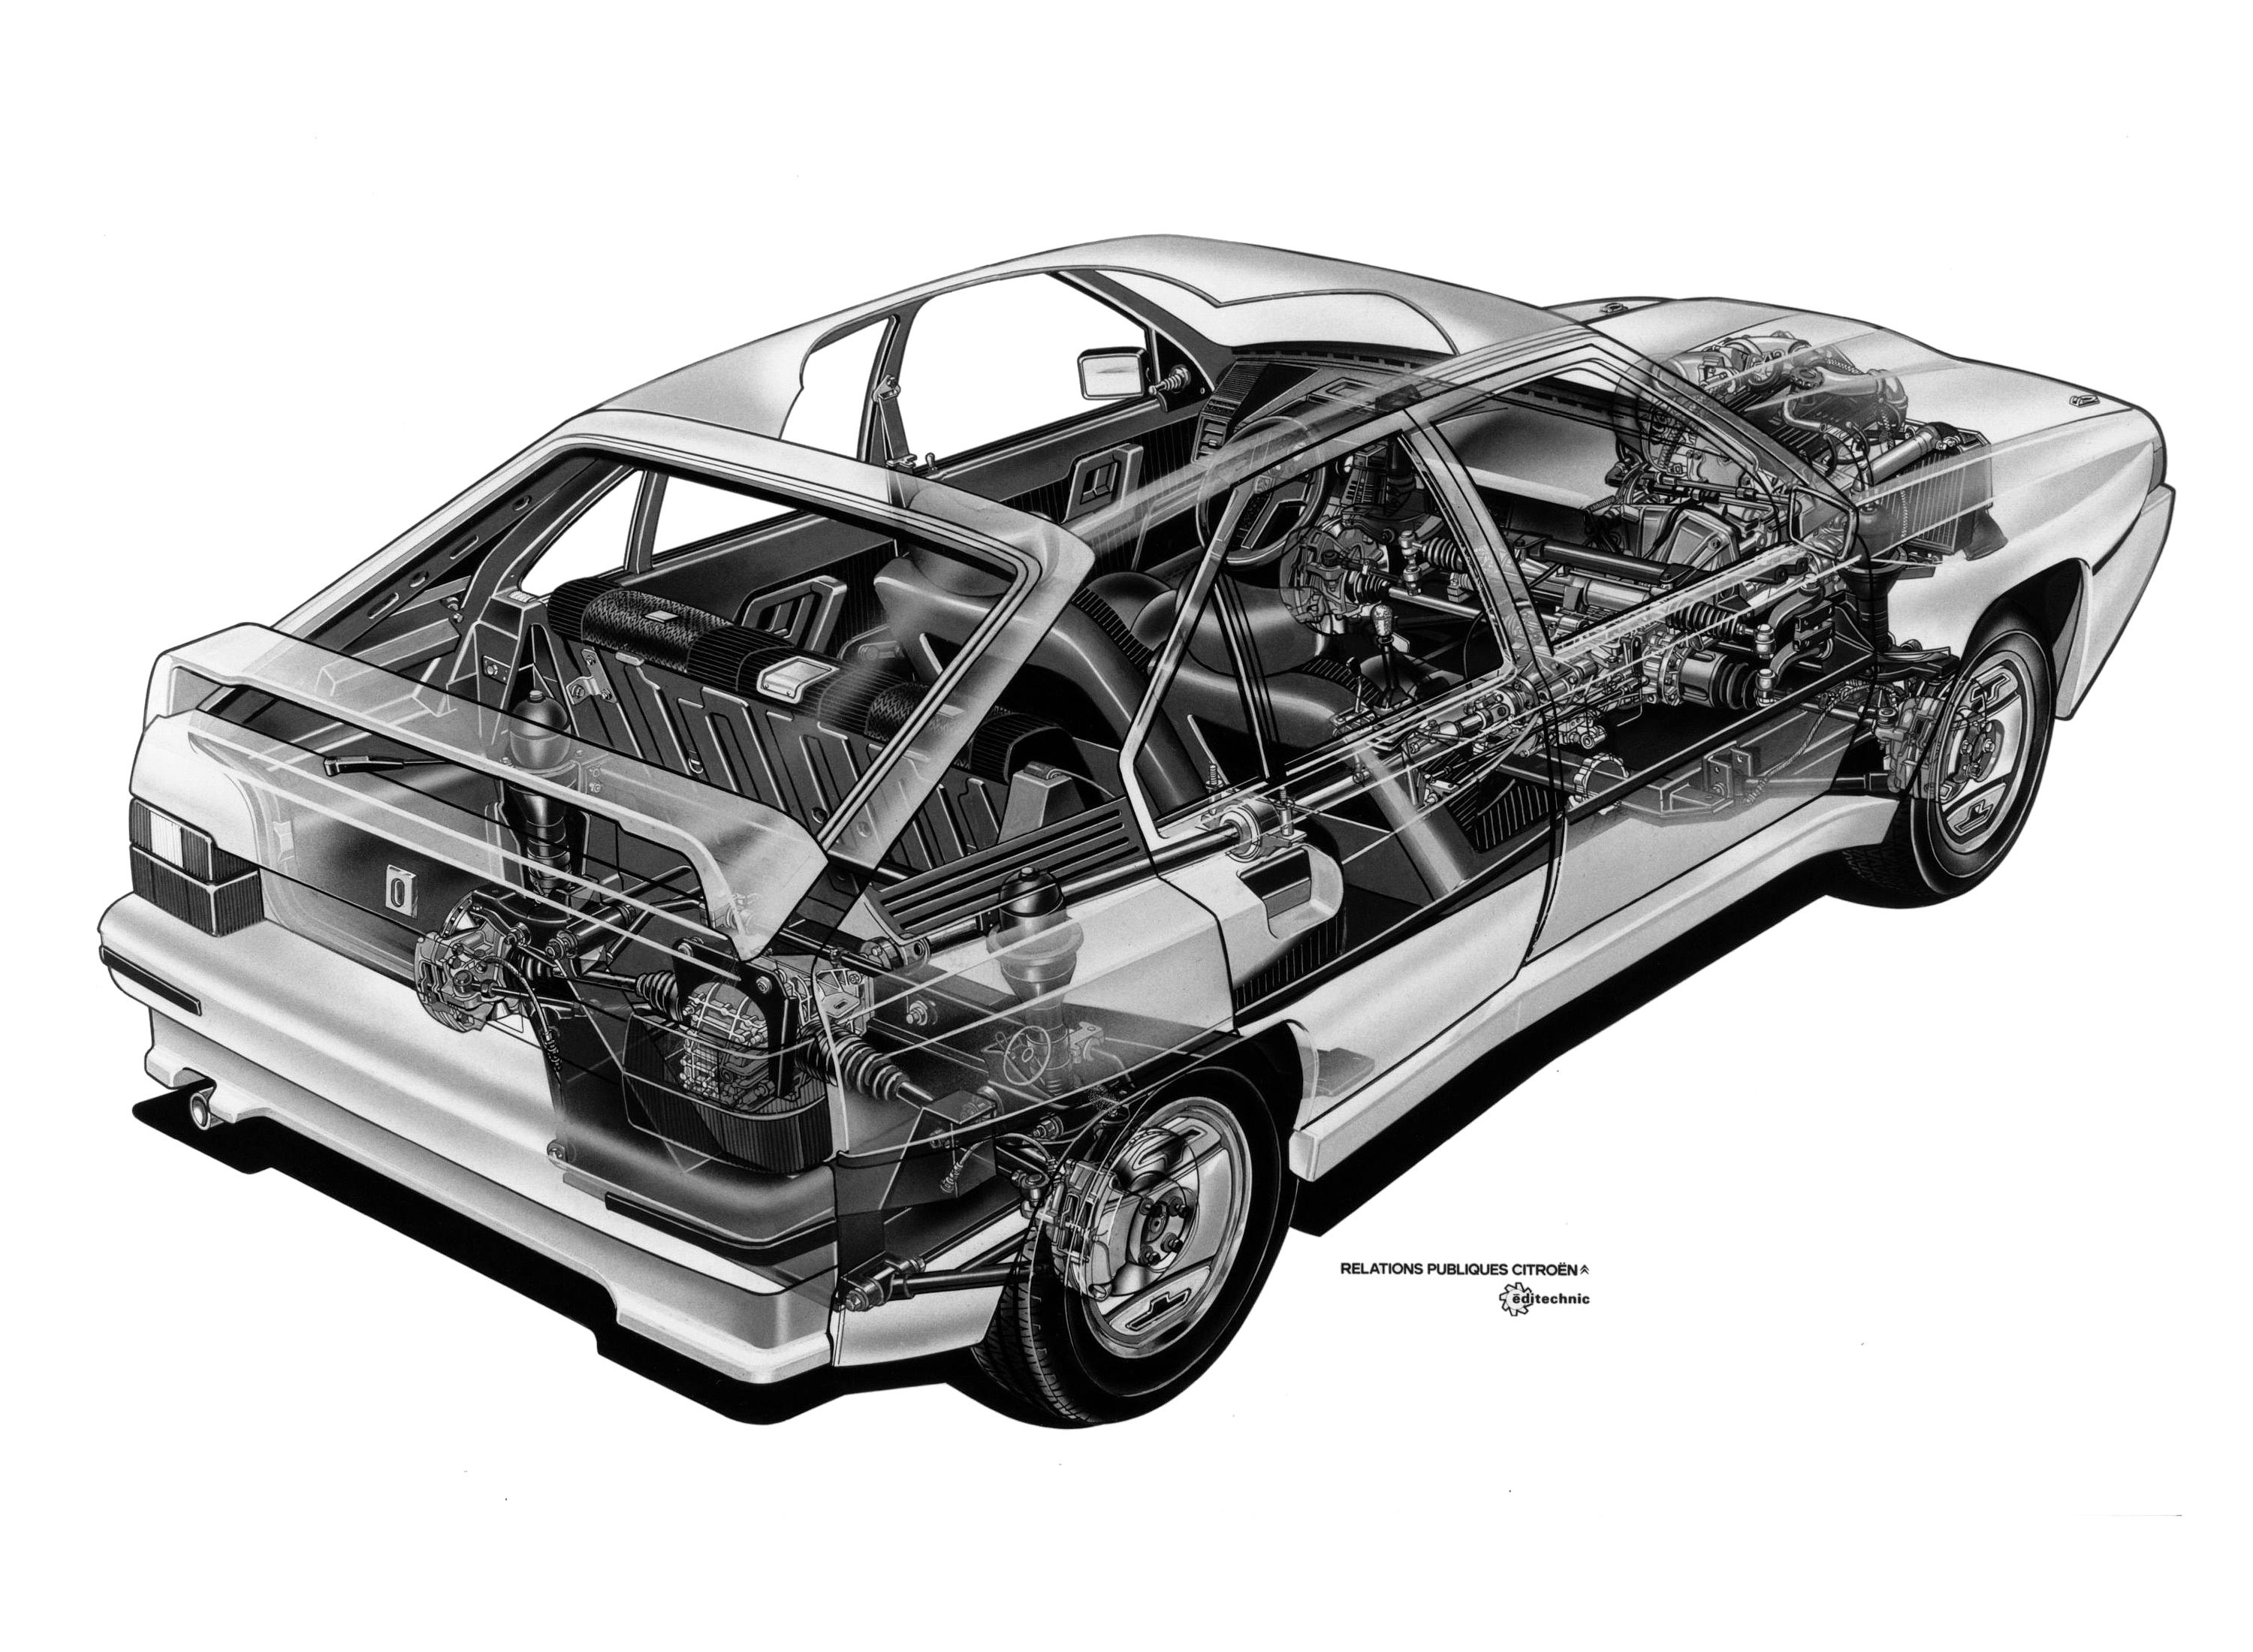 Citroen BX cutaway drawing